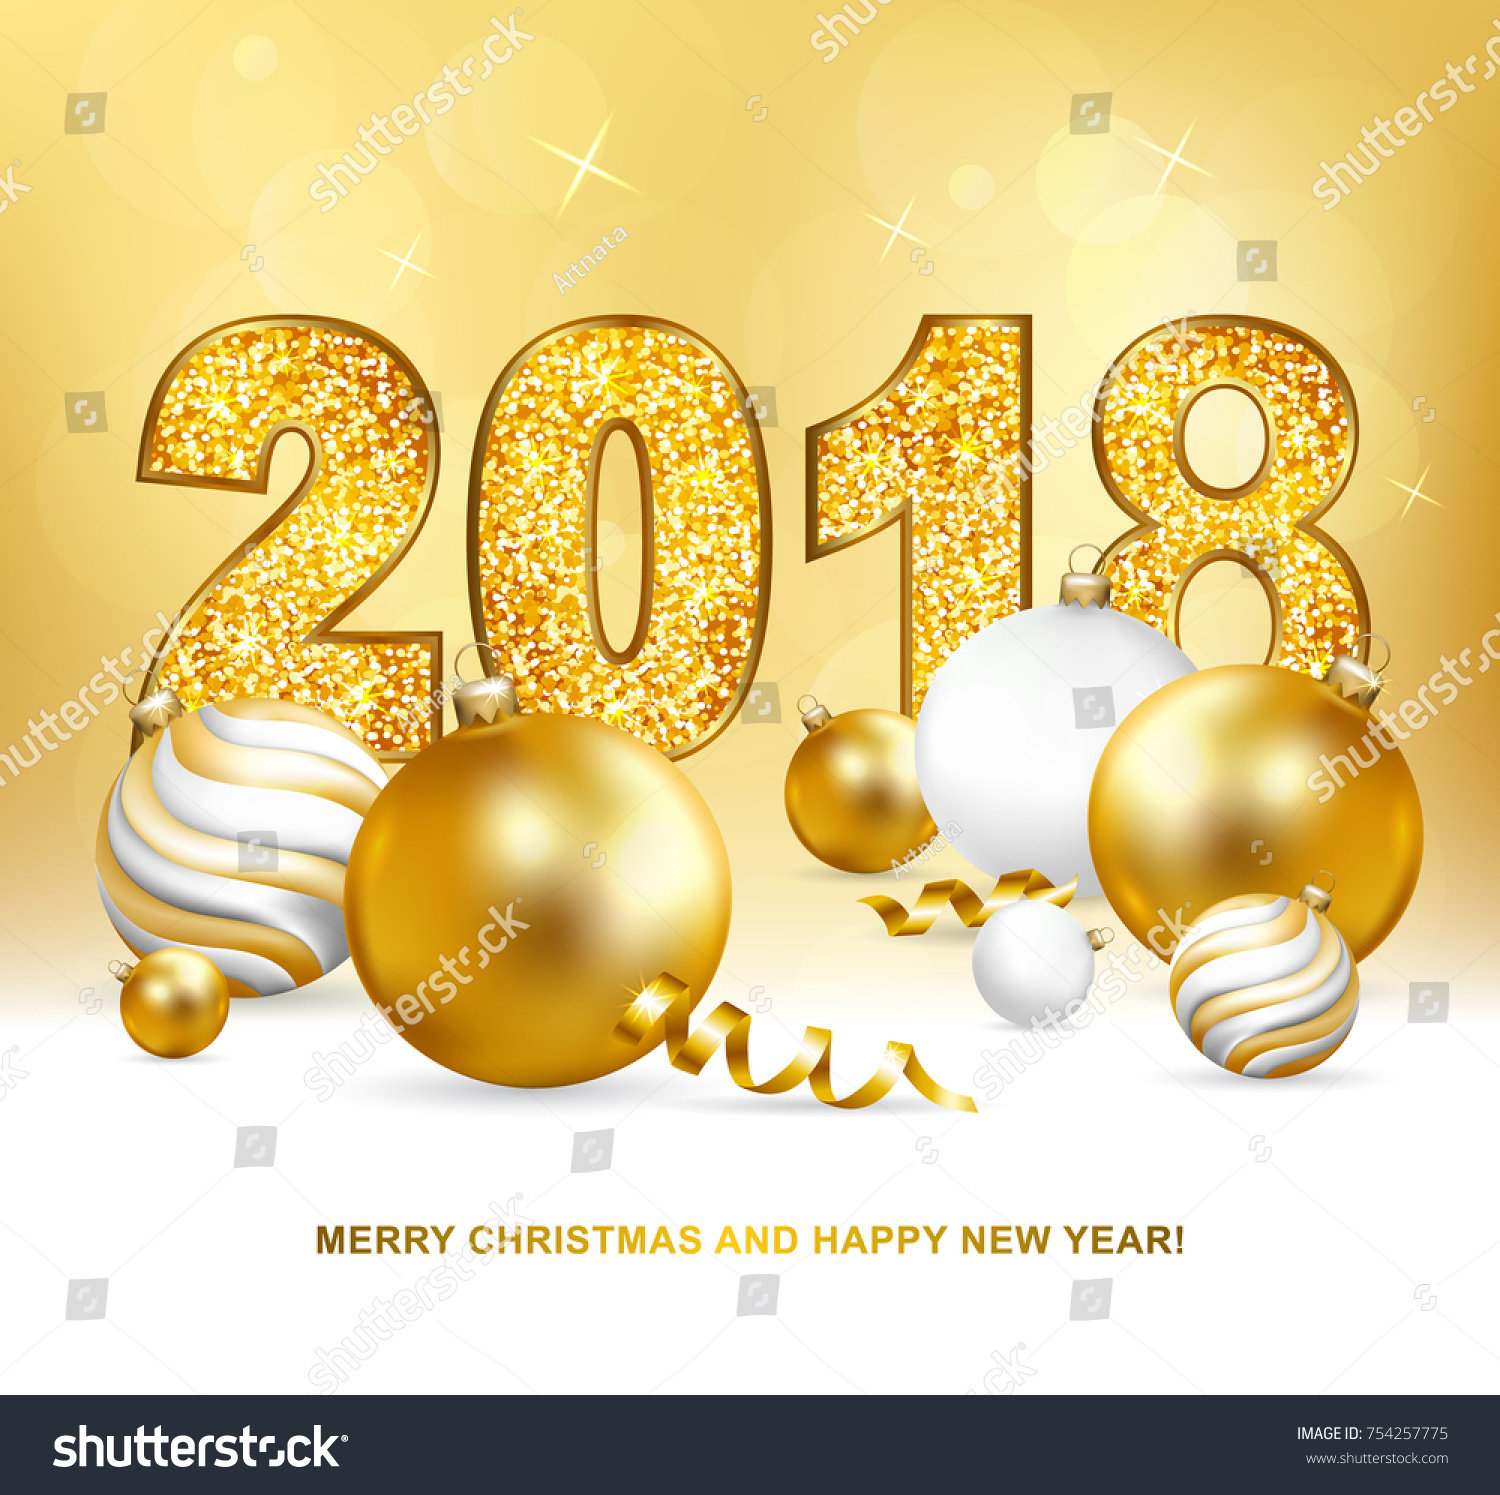 2018 merry christmas and happy new year card with christmas balls and serpentine gold glitter